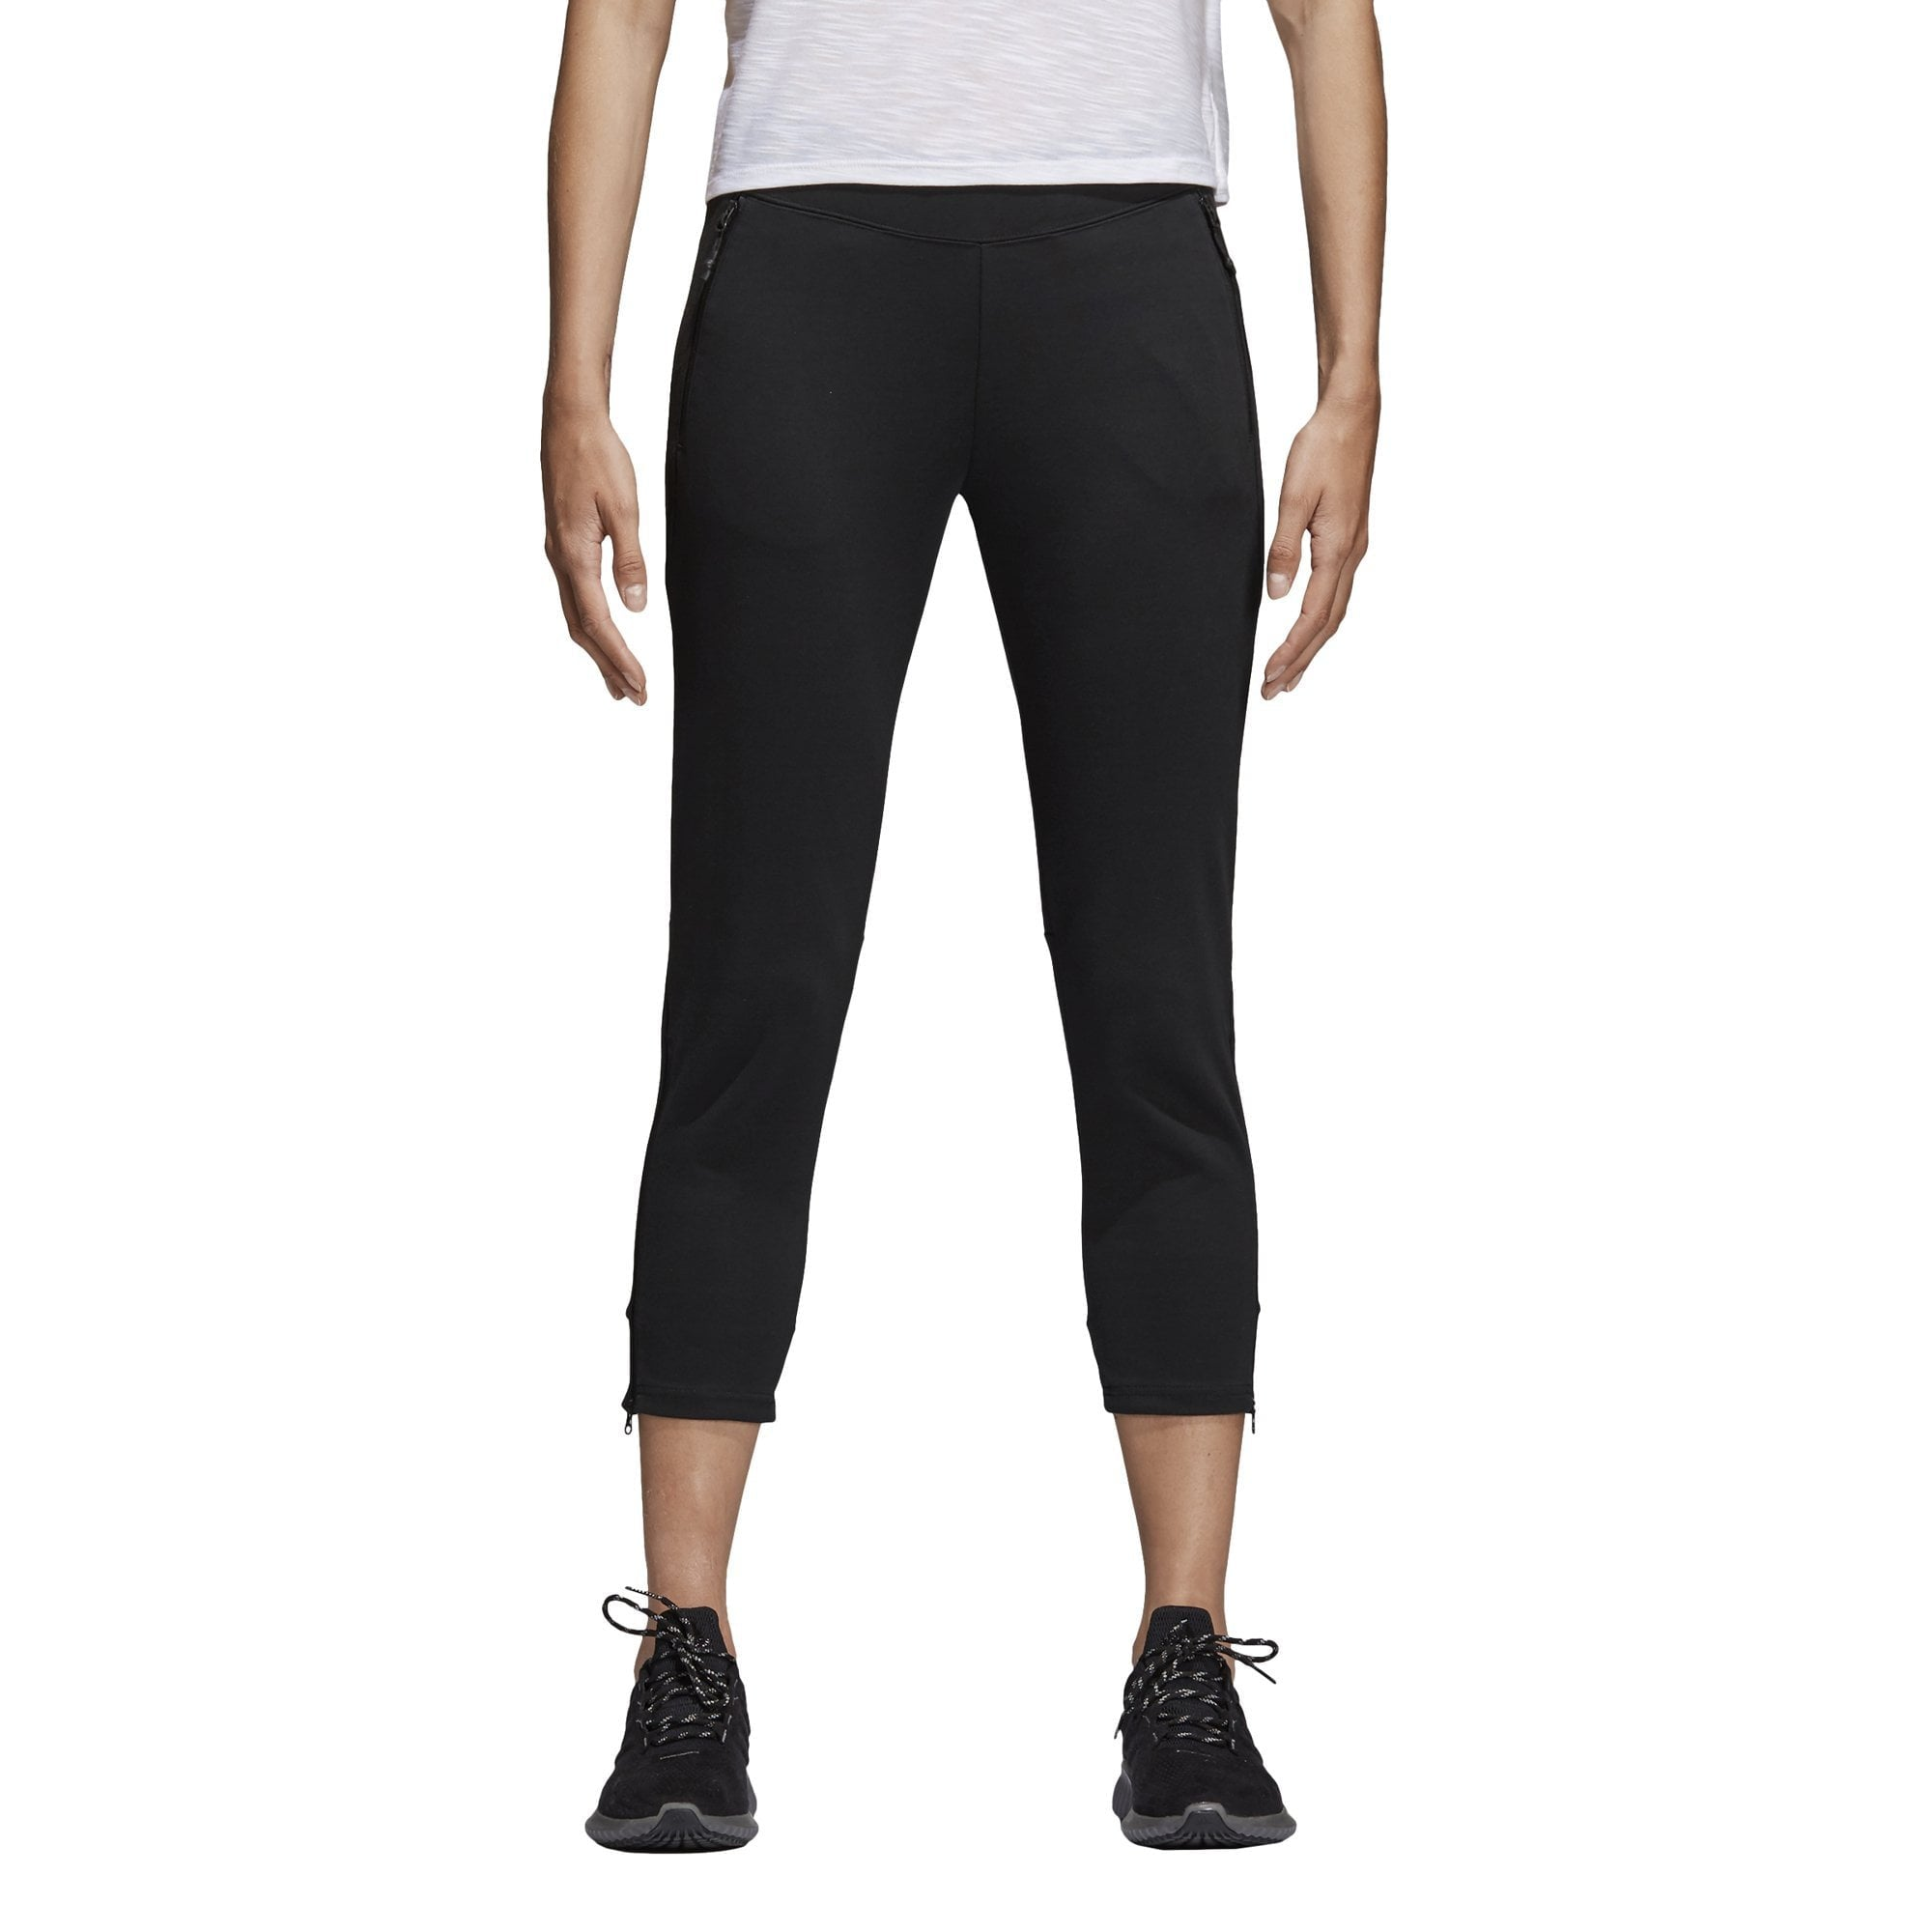 ADIDAS WOMEN'S ATHLETICS ID GLORY 7/8 BLACK SKINNY PANTS